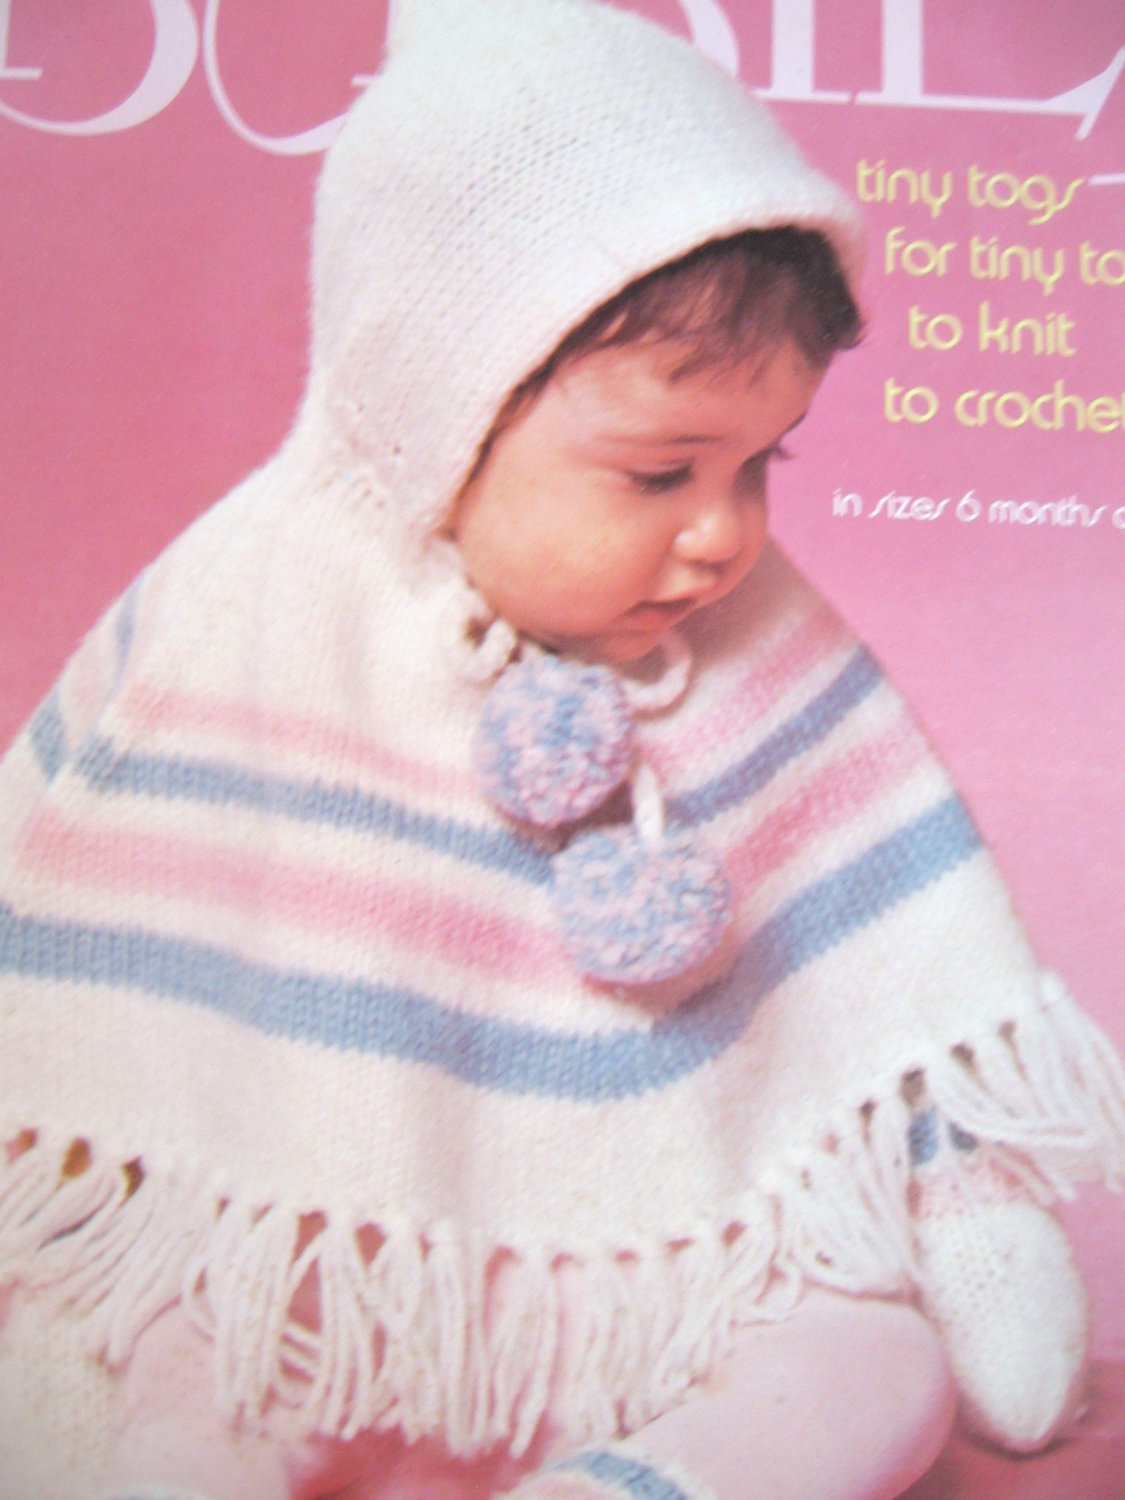 Babies Tiny Togs for TIny Tots to Crochet and Knit Columbia Minerva 2523